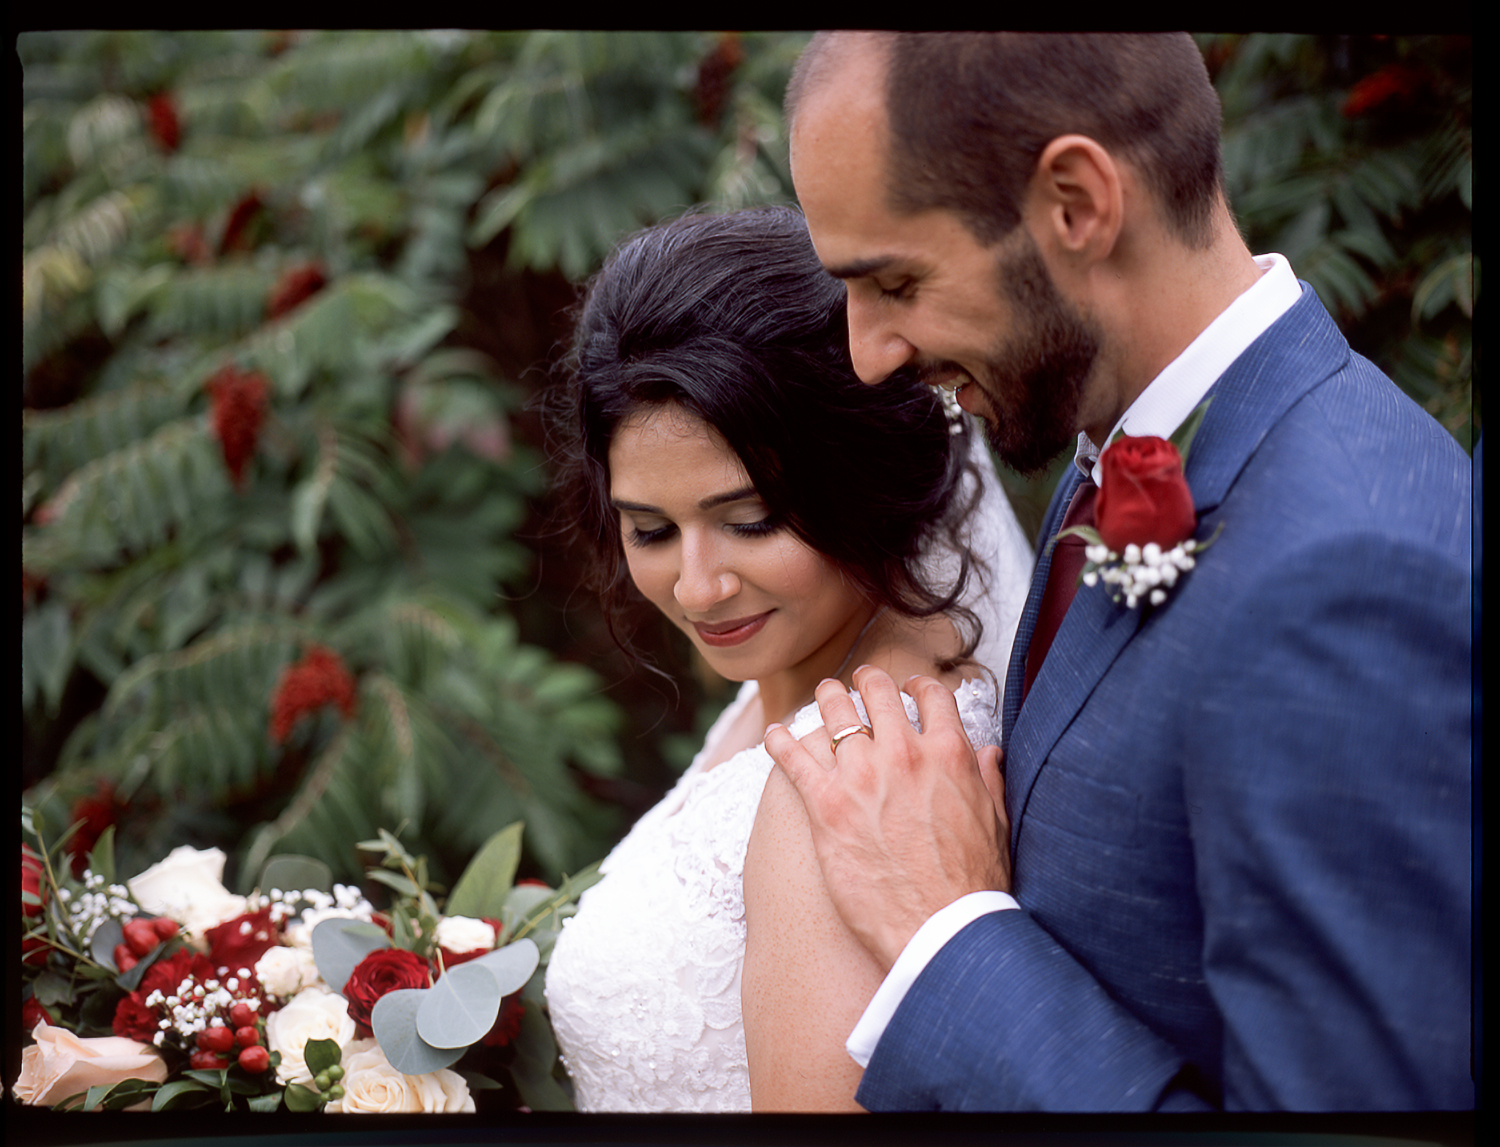 Best-Film-Wedding-Photographer-Toronto-3B-Photography-Brjann-Batista-Bettencourt-Edotiral-documentary-wedding-photography-candid-portrait-Medium-Format-Film-Fuji-Provia-100F-Slide-Film-Bride--groom-candid-moment-together.jpg